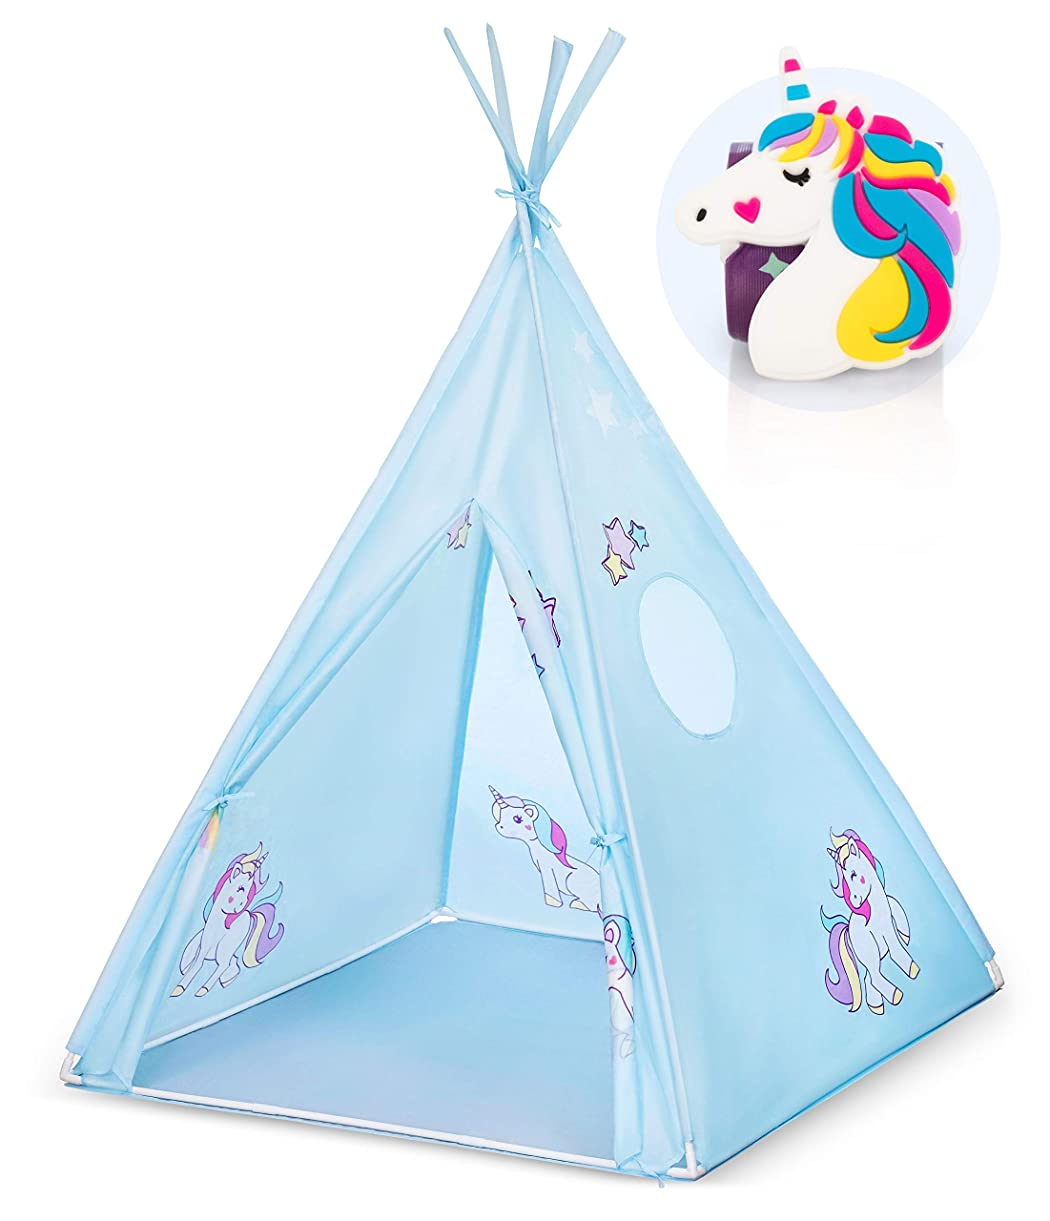 Unicorn Teepee Tent for Kids and Toddlers - Indoor & Outdoor Playhouse - A Princess's Imaginary Playroom - Portable, Folds Down w/ Unicorn Bracelet and Convenient Carry Case | New Hut for Girls & Boys suxzw5988